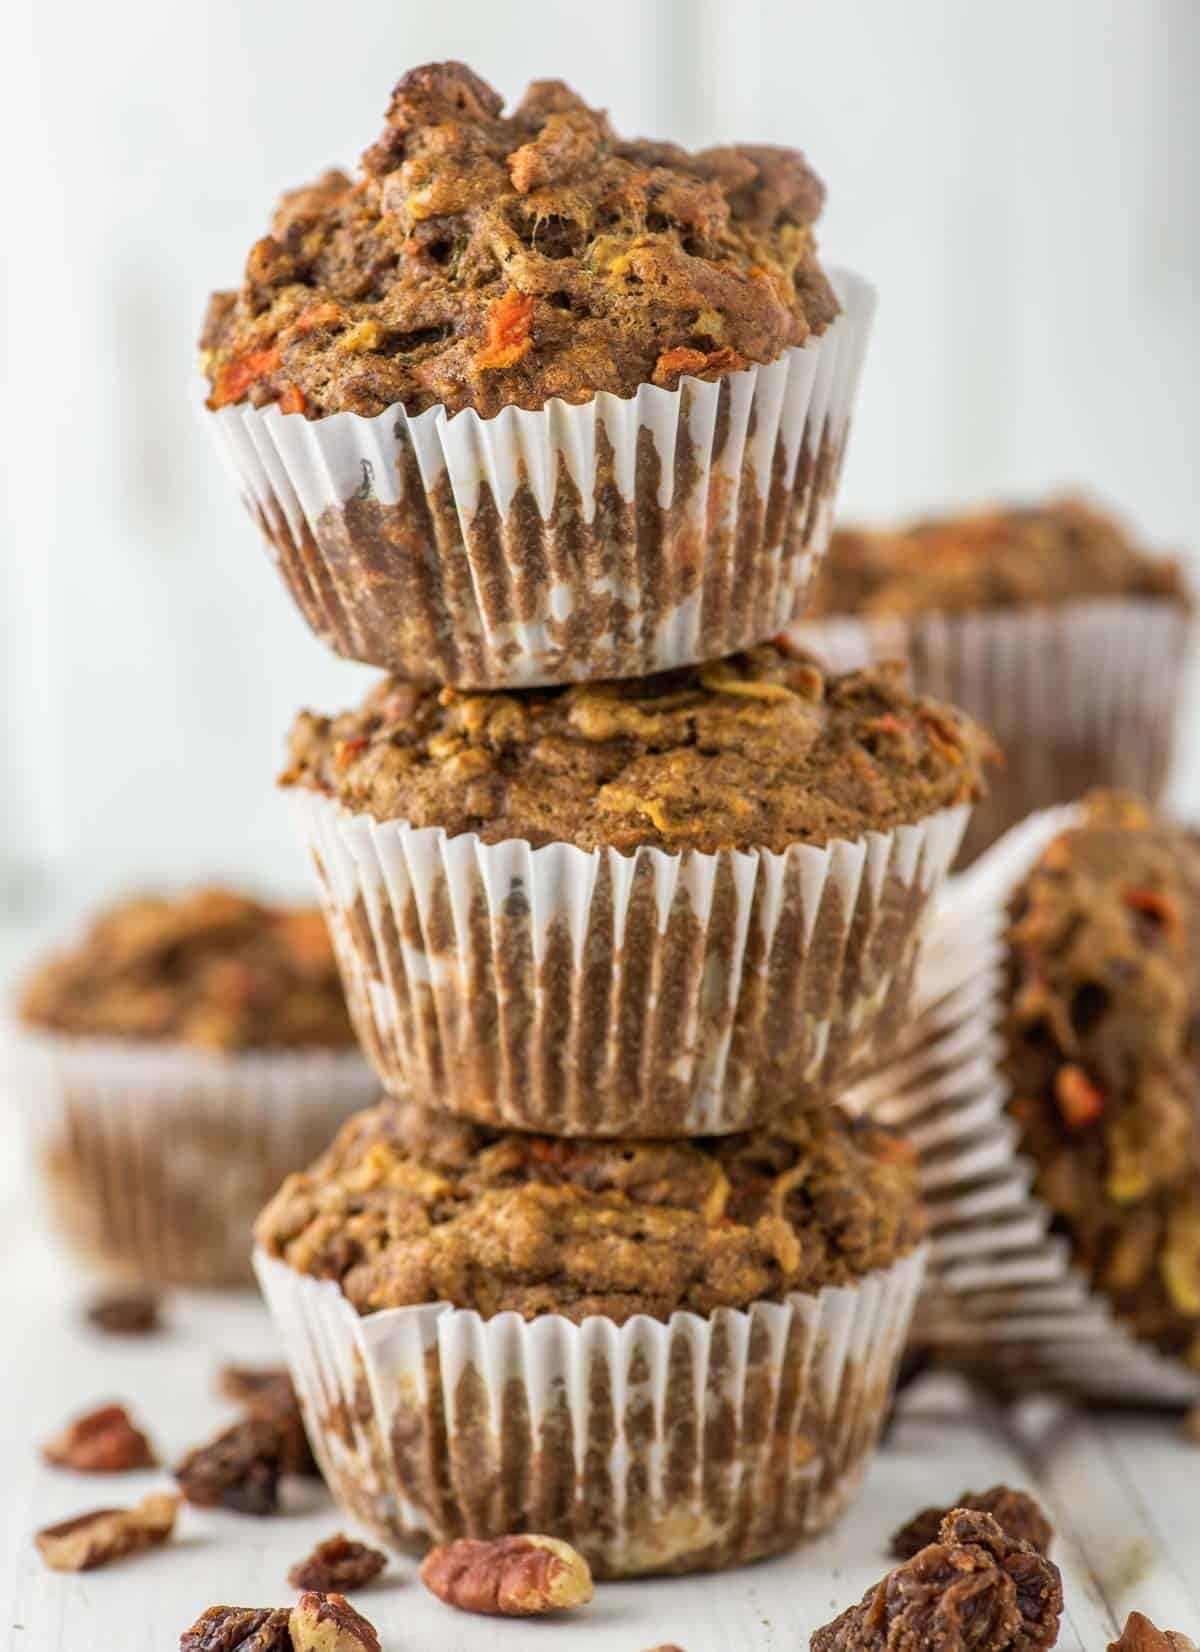 3 stacked morning glory muffins with more in background